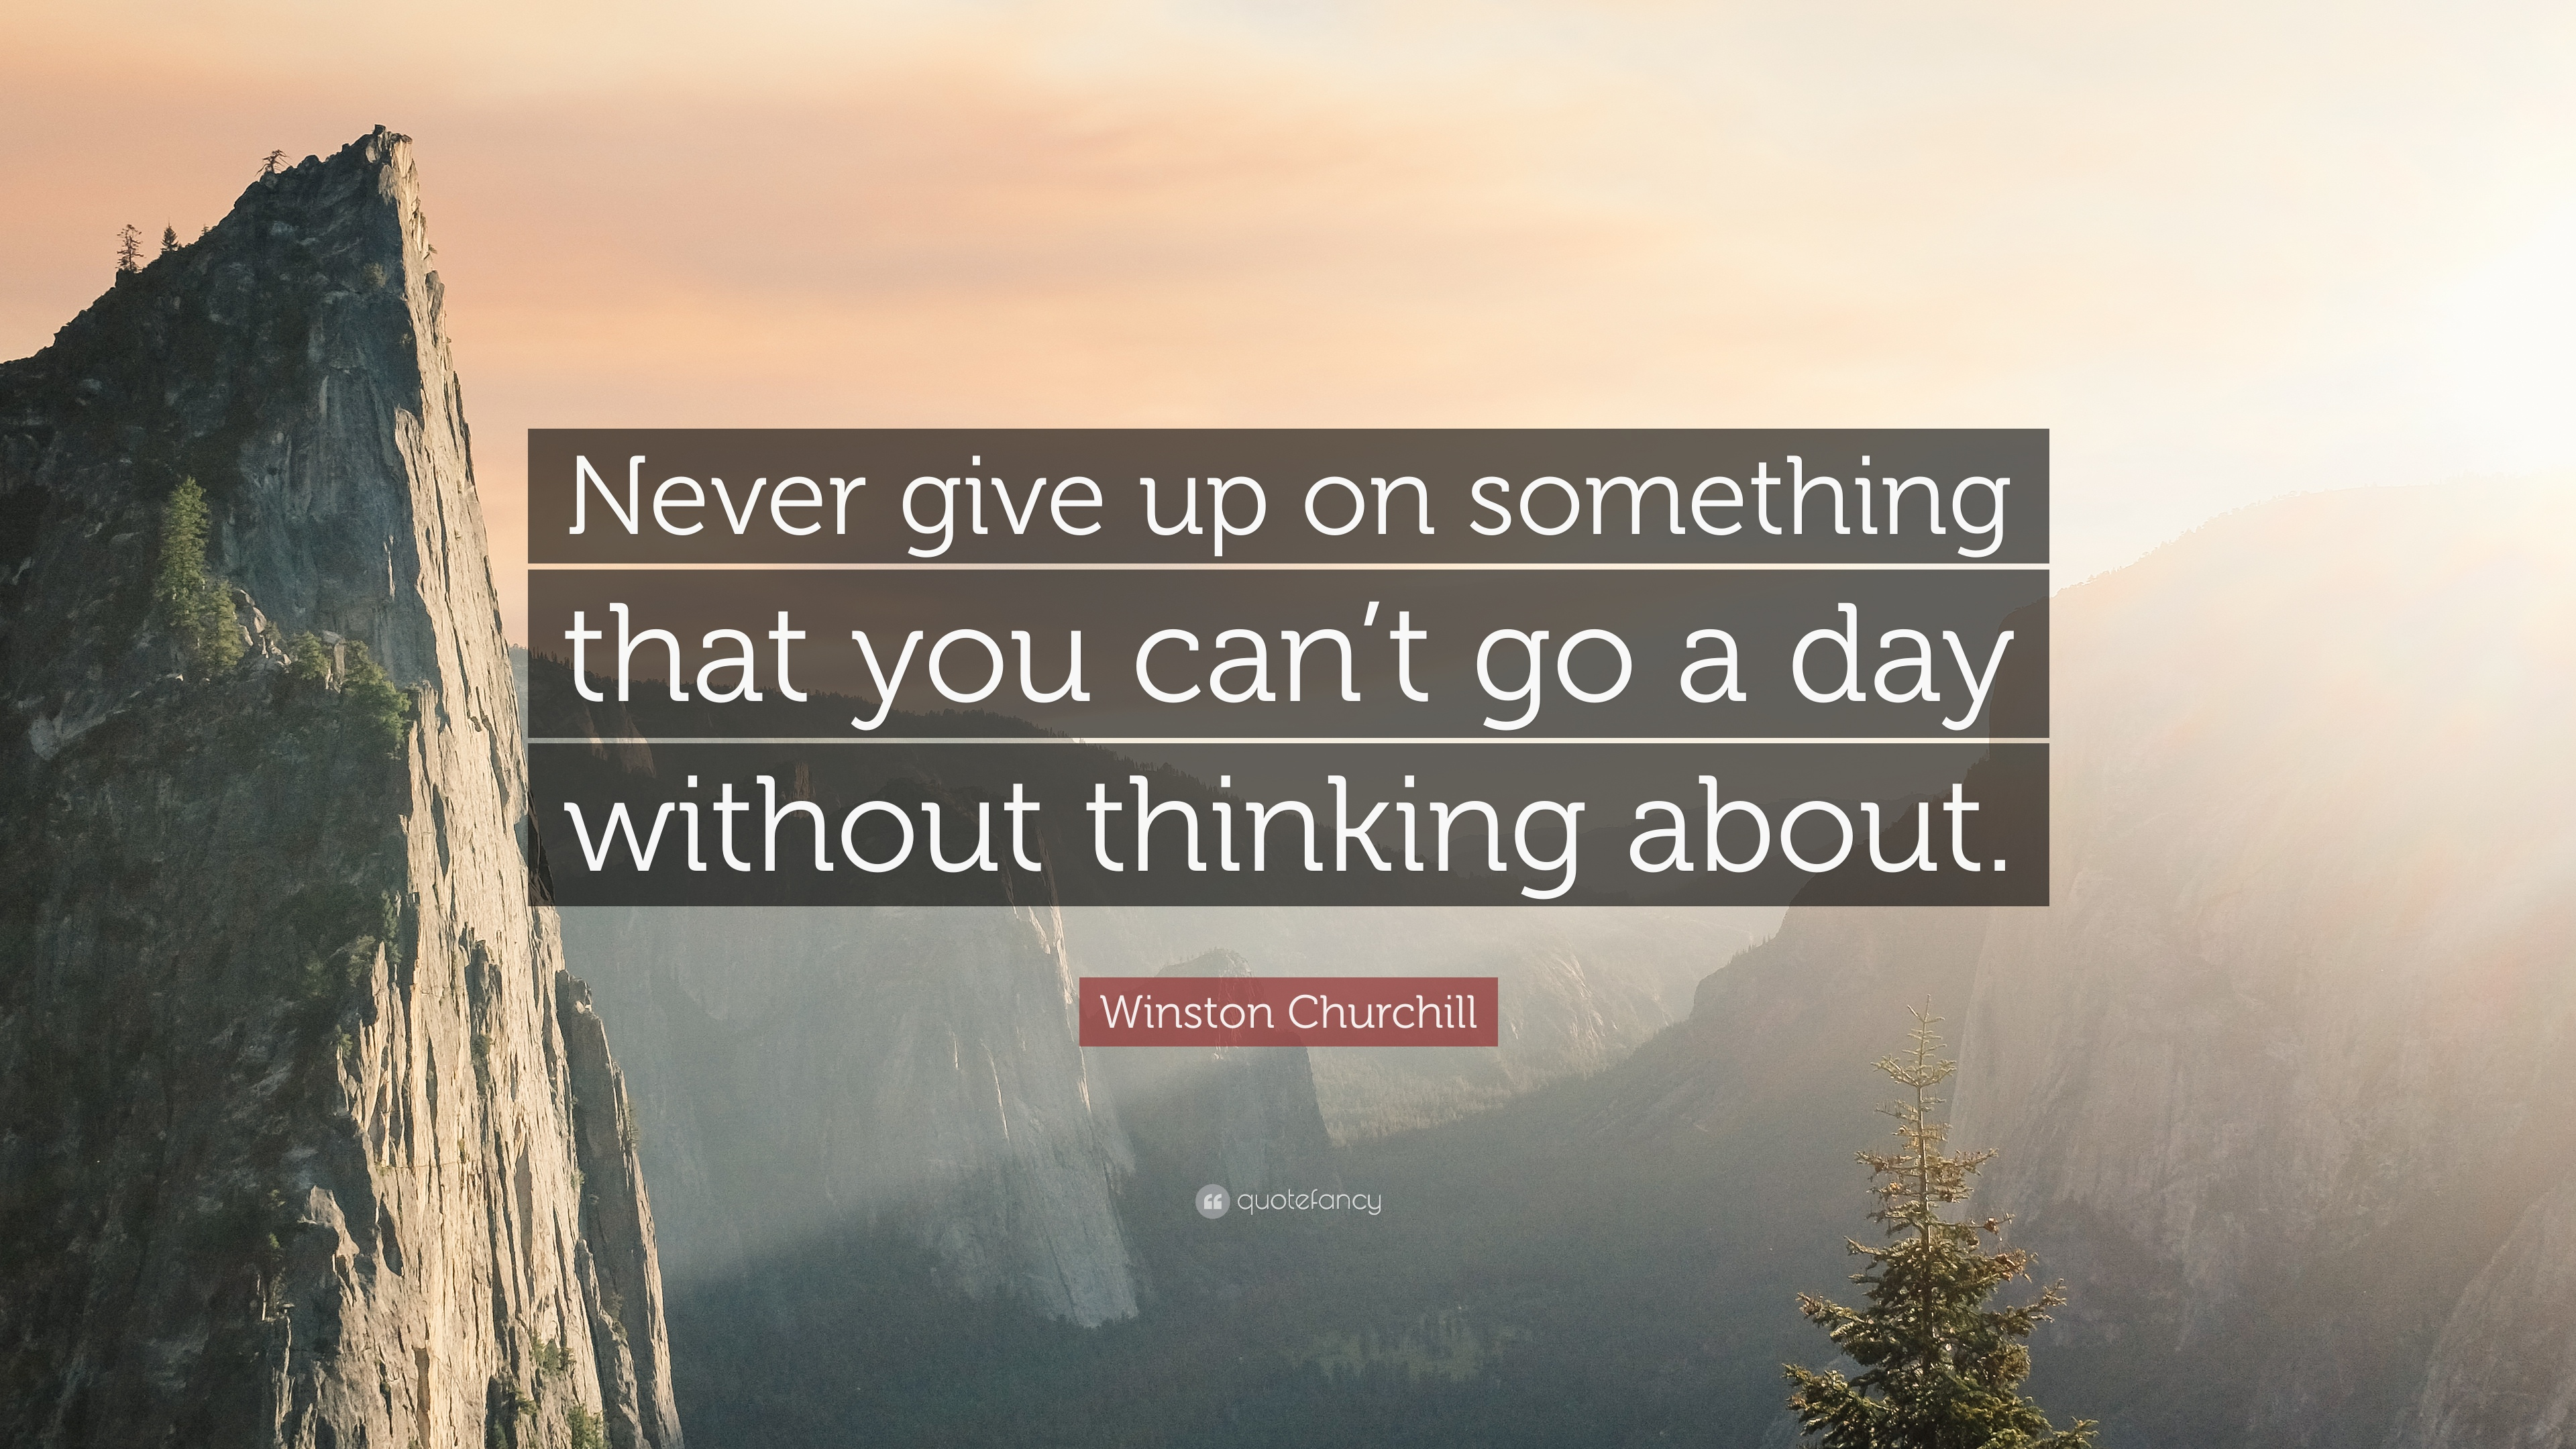 Bilderesultat for never give up on something that you can't go a day without thinking about